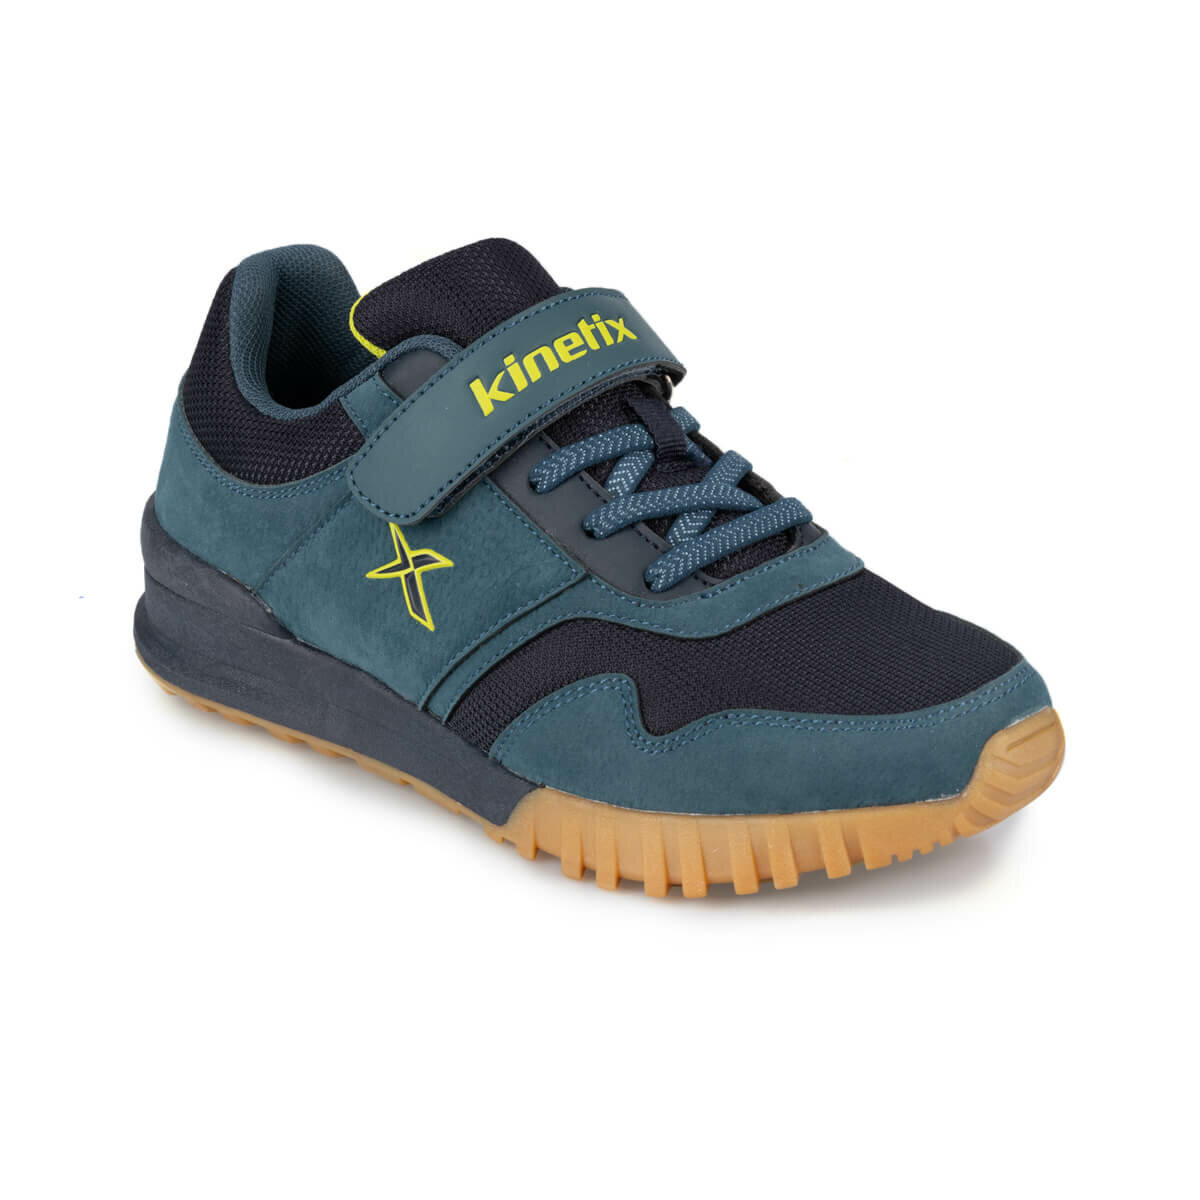 FLO HUBER J 9PR Oil Male Child Sneaker Shoes KINETIX